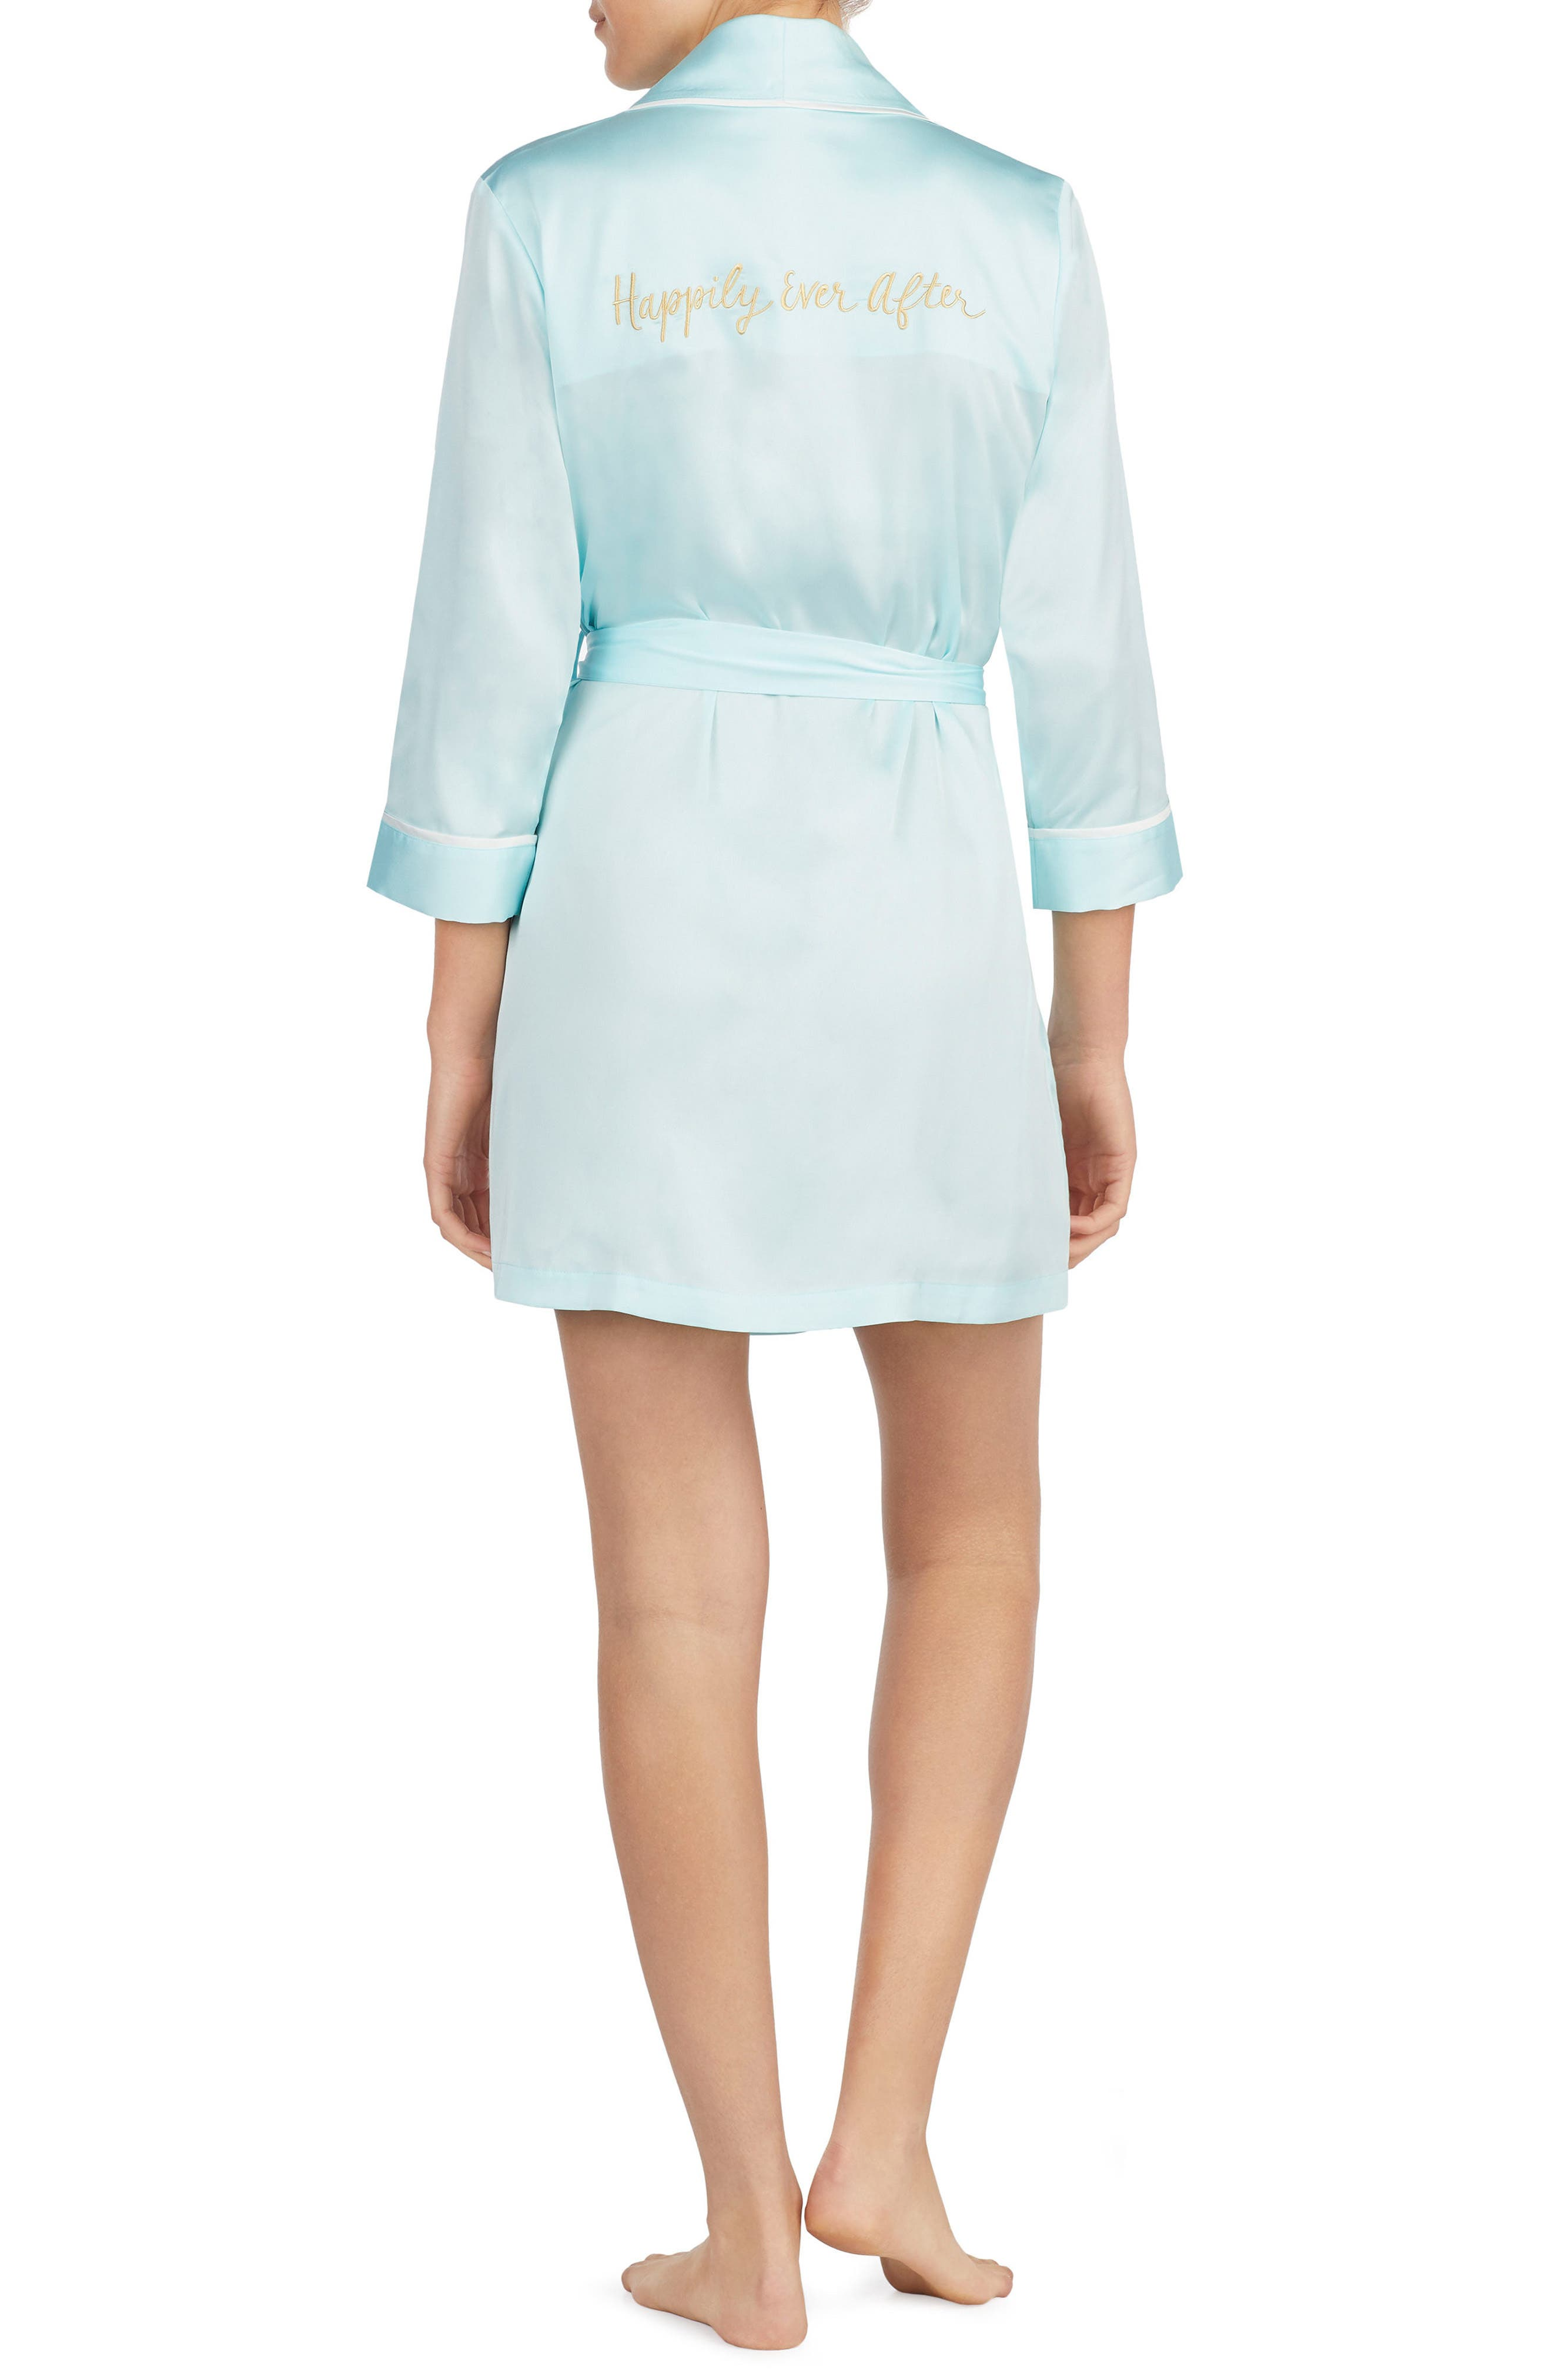 happily ever after charmeuse short robe,                             Alternate thumbnail 2, color,                             405